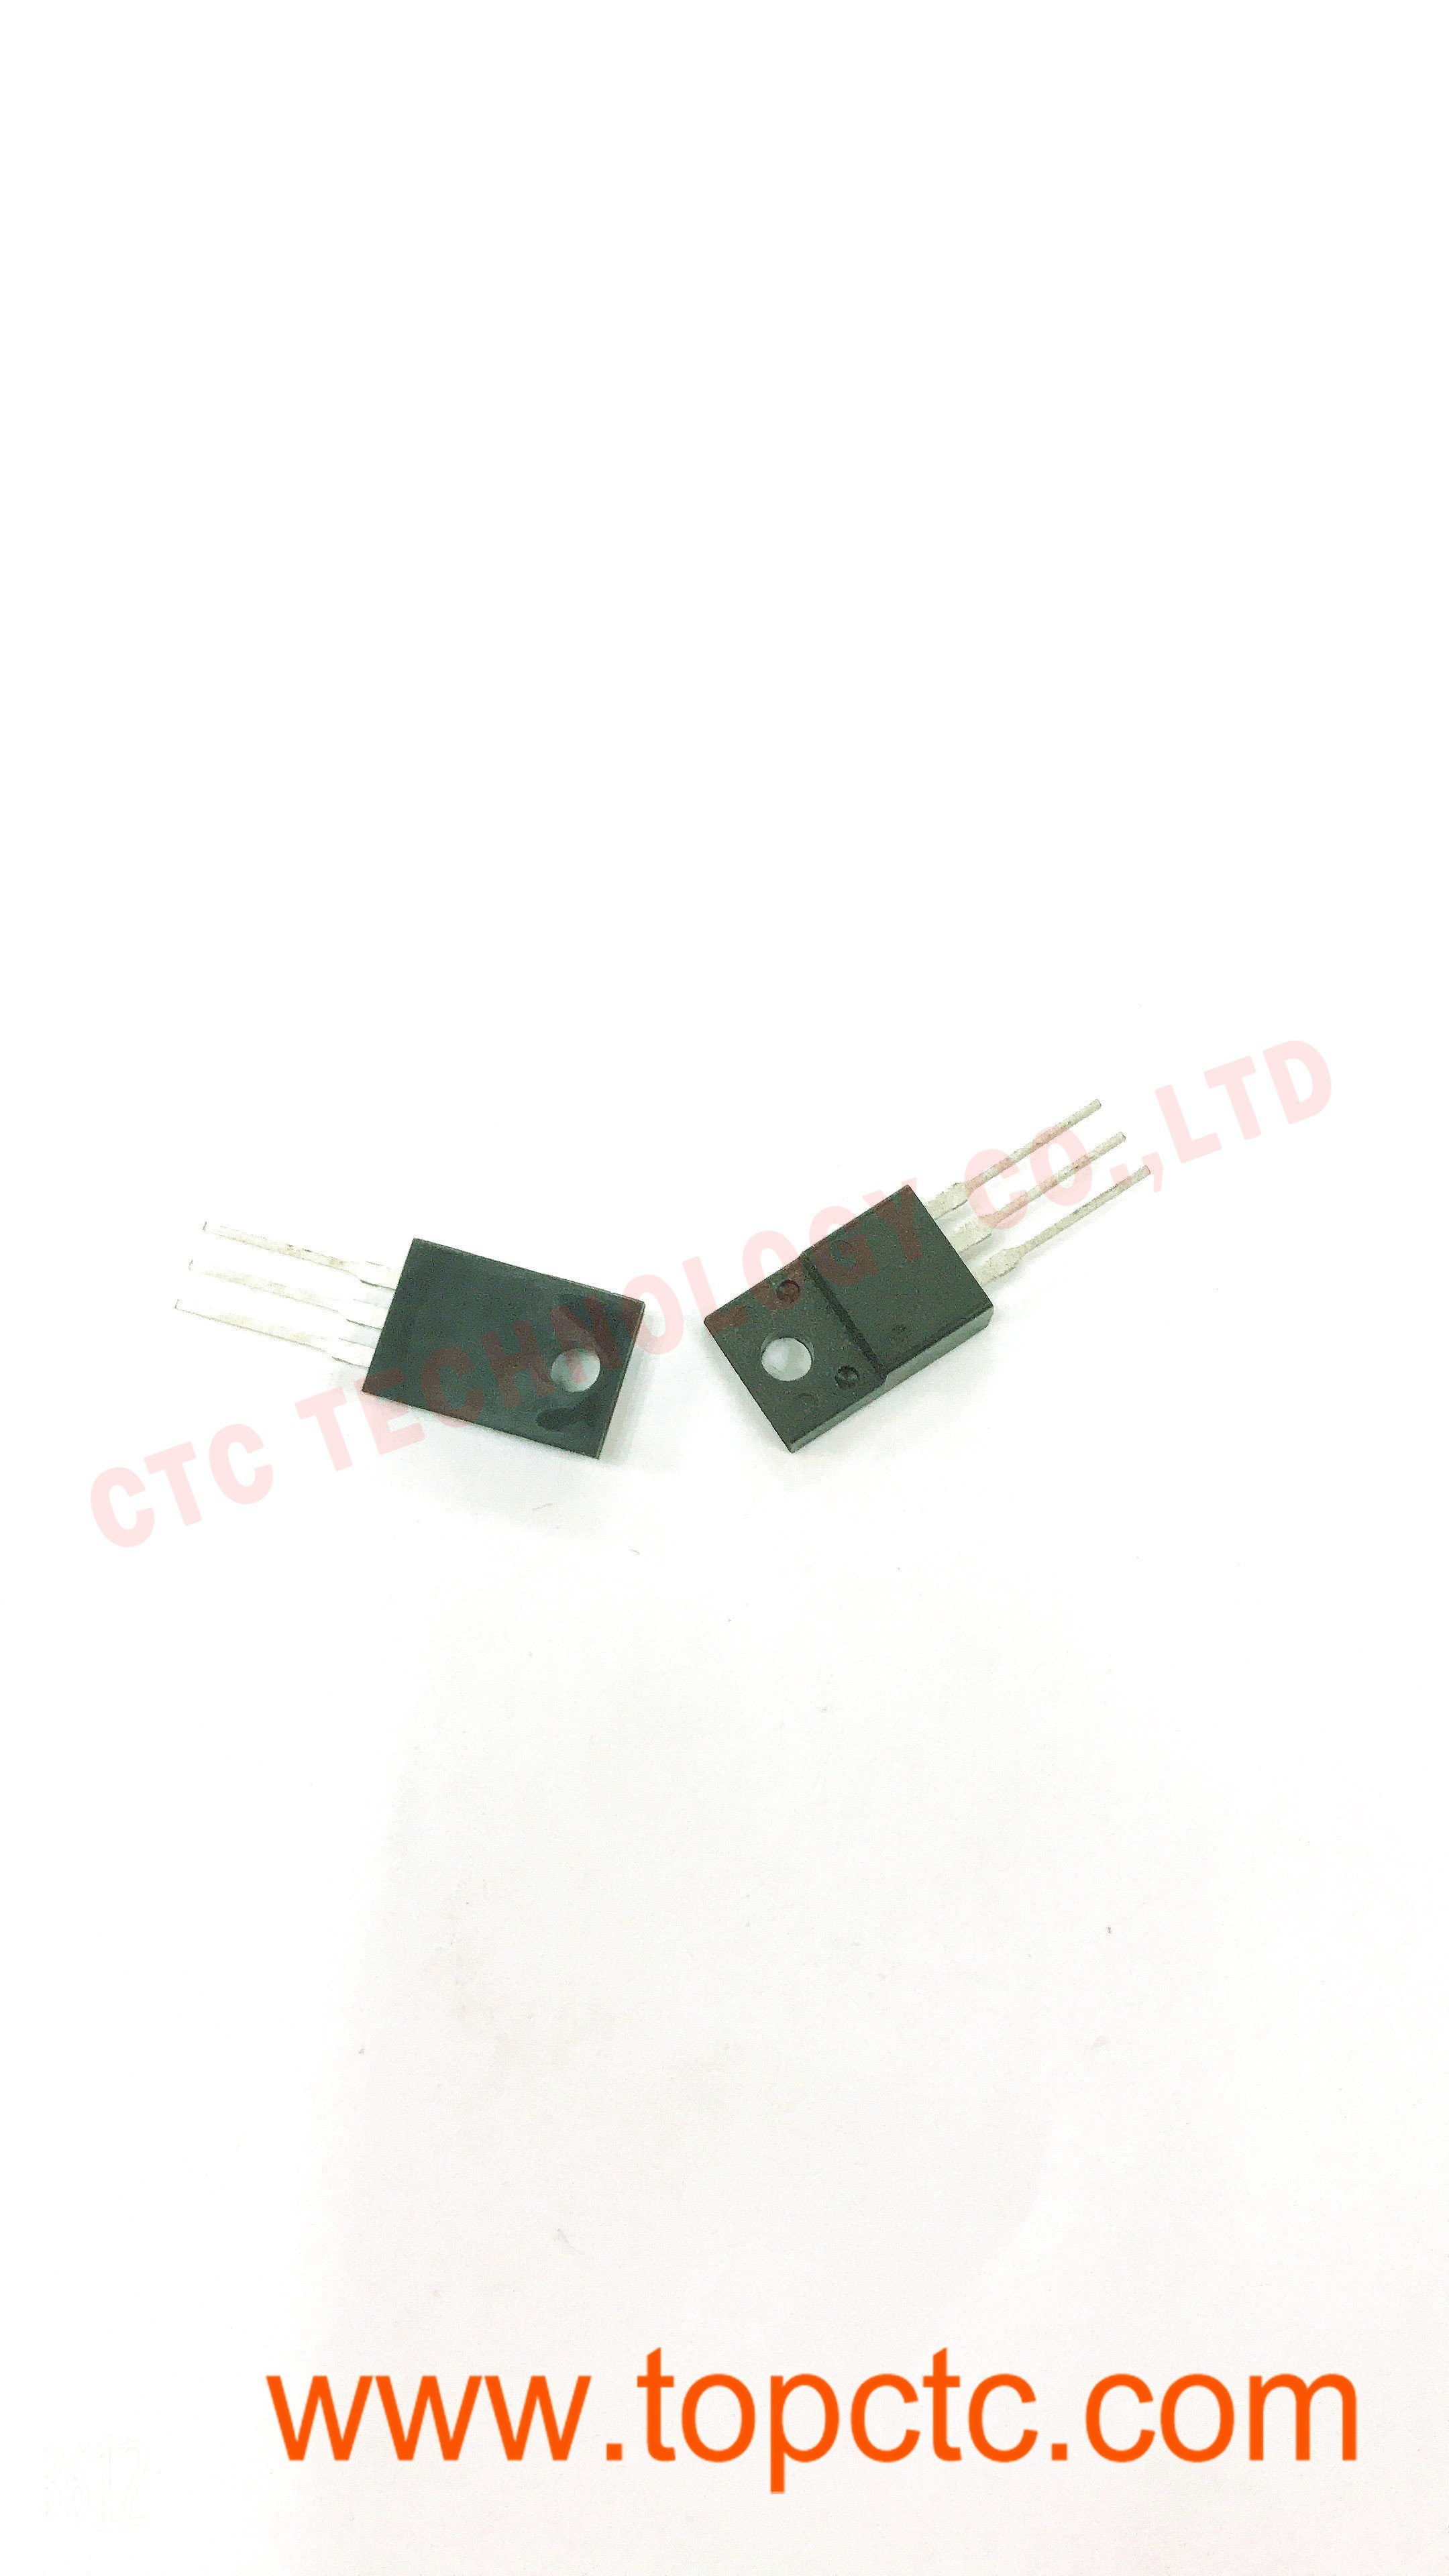 IGBT Transistors 600V 40A High Speed Trench Gate IGBT 10 pieces